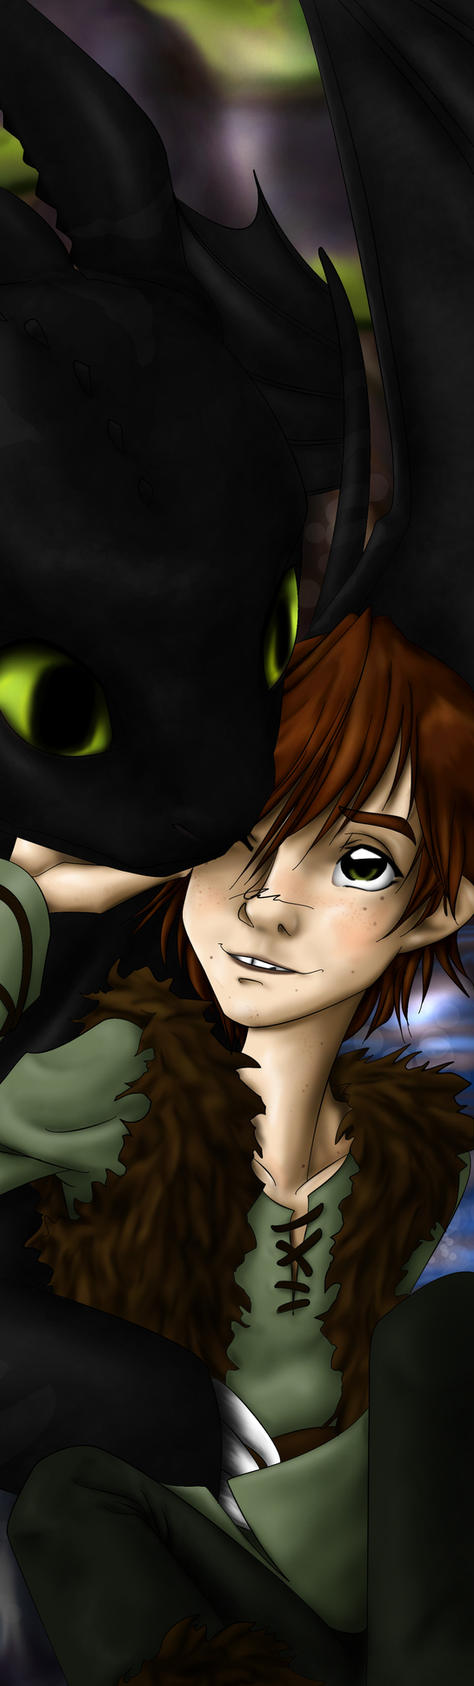 Bookmark Dragontrainer - Hiccup/Toothless - HttyD by PiccoGirl